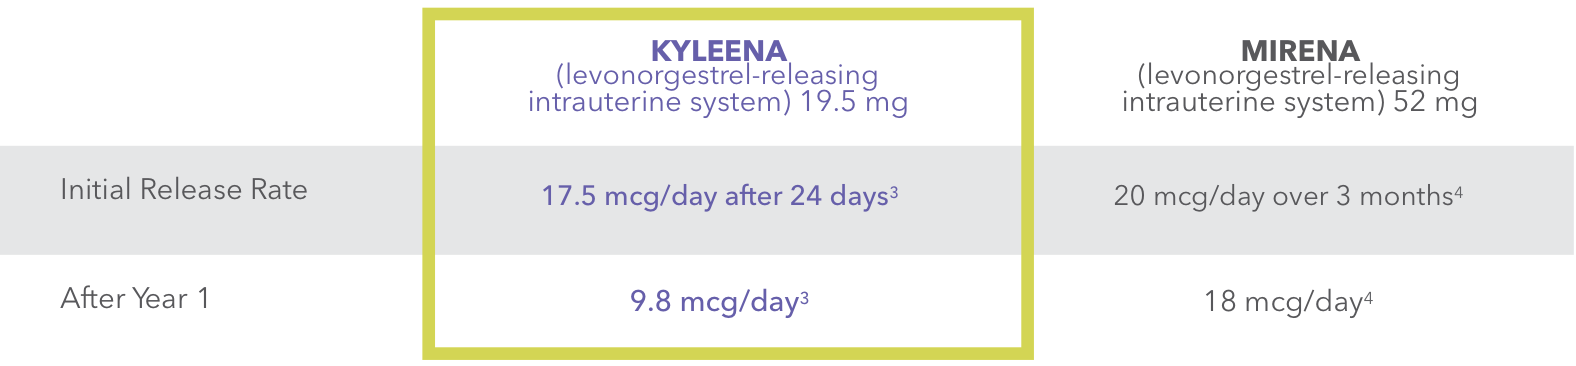 Table showing Kyleena® (levonorgestrel-releasing intrauterine system) 19.5 mg and Mirena® (levonorgestrel-releasing intrauterine system) 52 mg daily release rates